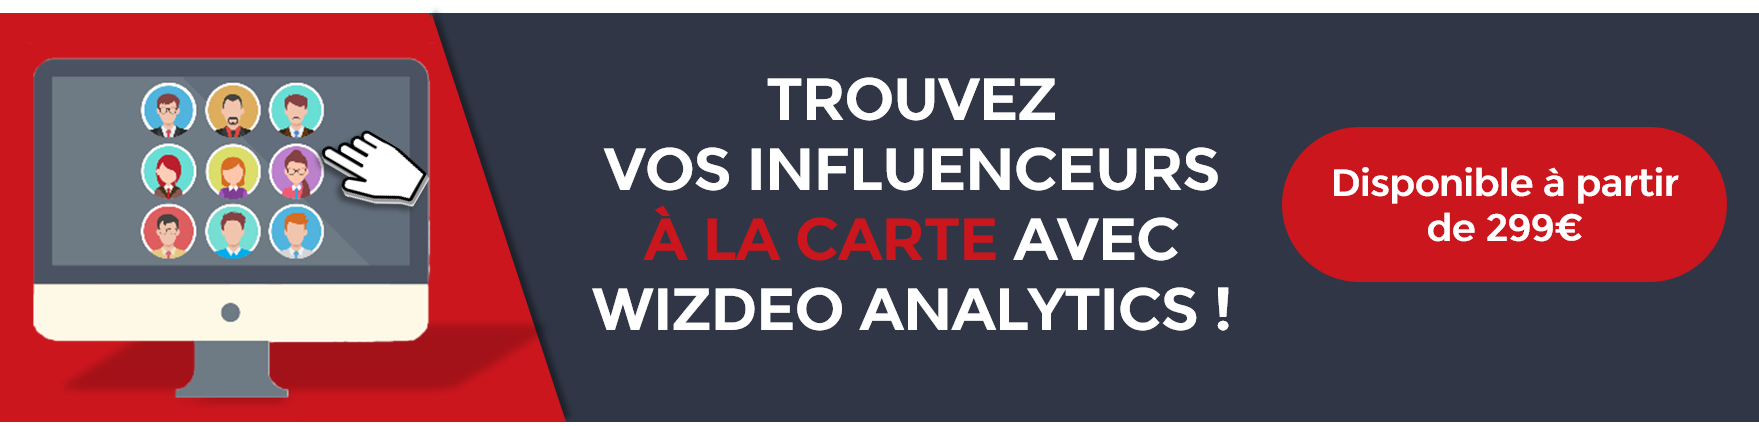 bandeau licence brands wizdeo analytics 2